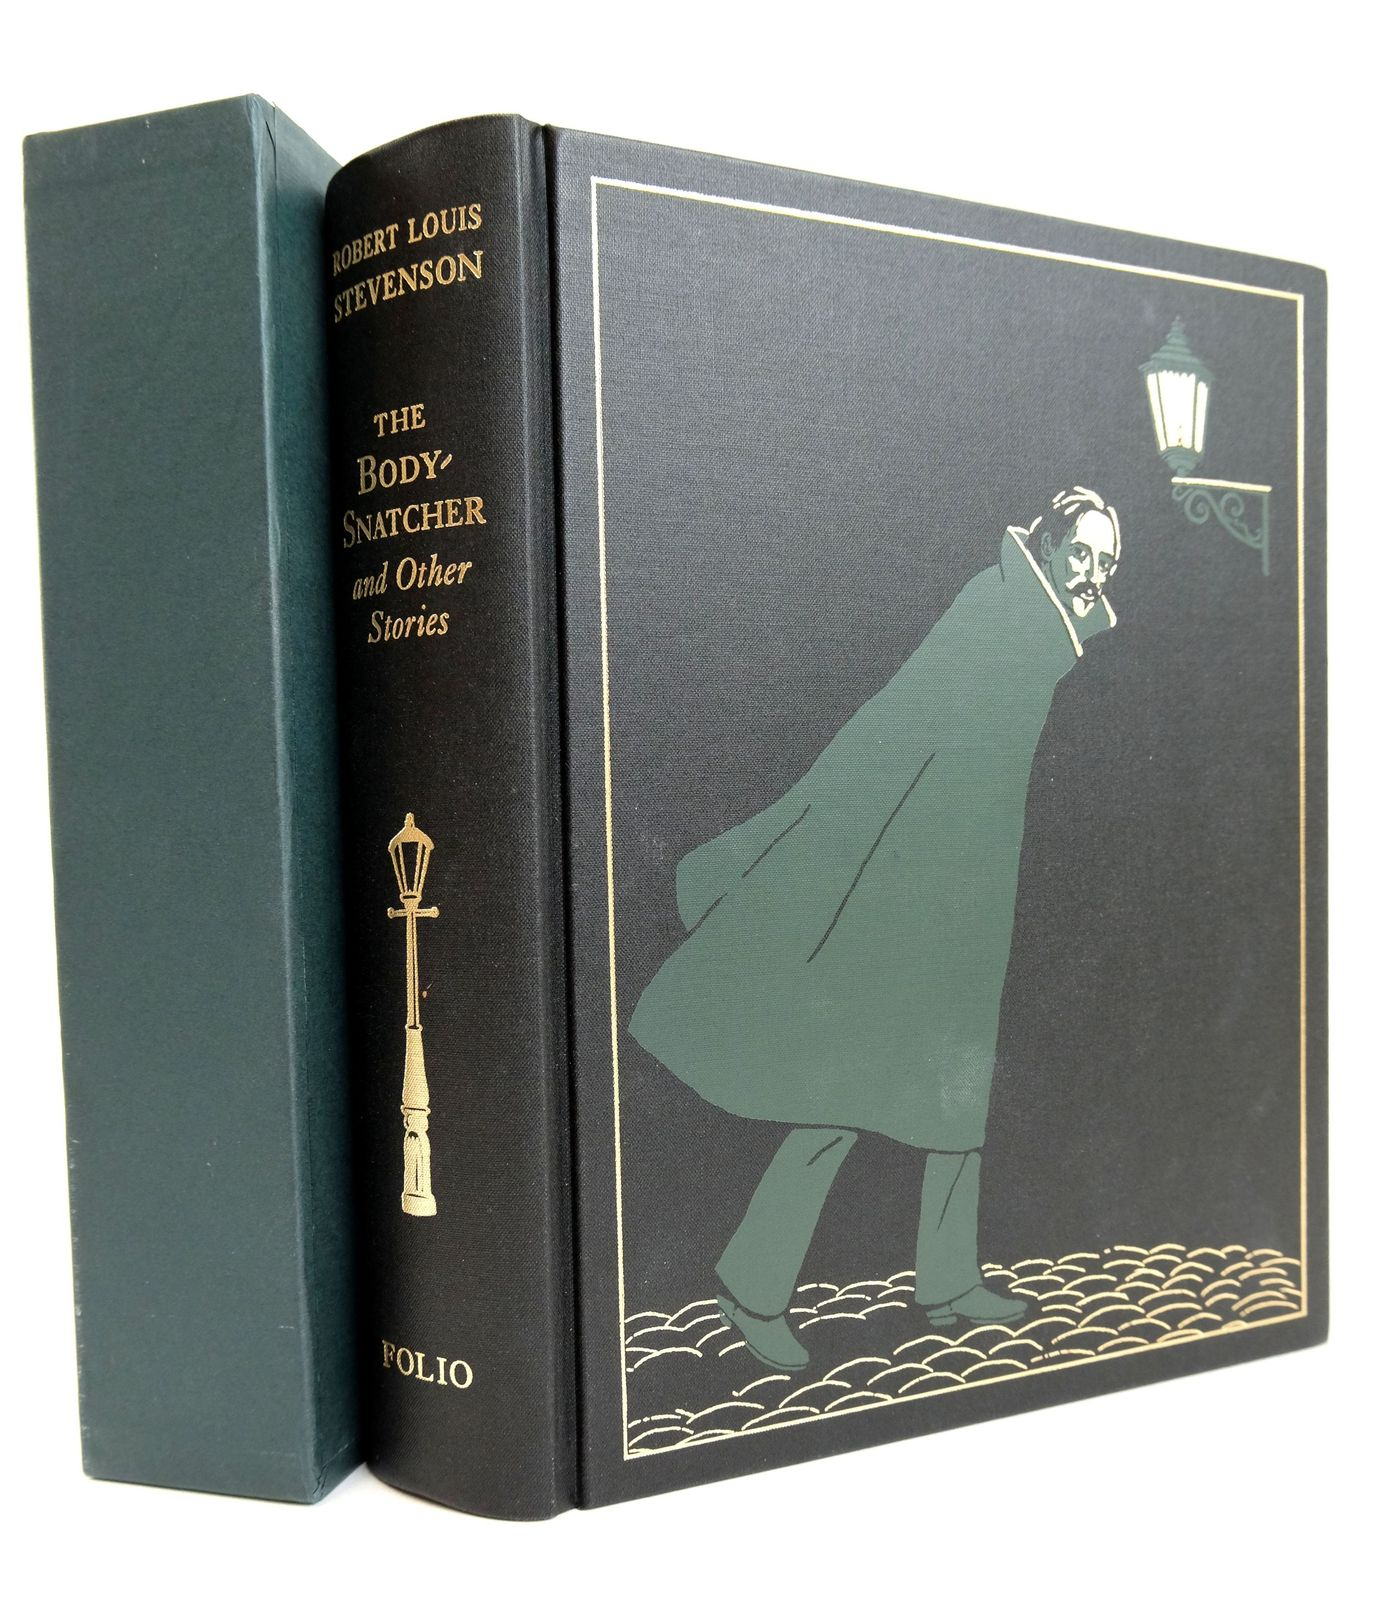 Photo of THE BODY-SNATCHER AND OTHER STORIES written by Stevenson, Robert Louis illustrated by Foreman, Michael published by Folio Society (STOCK CODE: 1818926)  for sale by Stella & Rose's Books